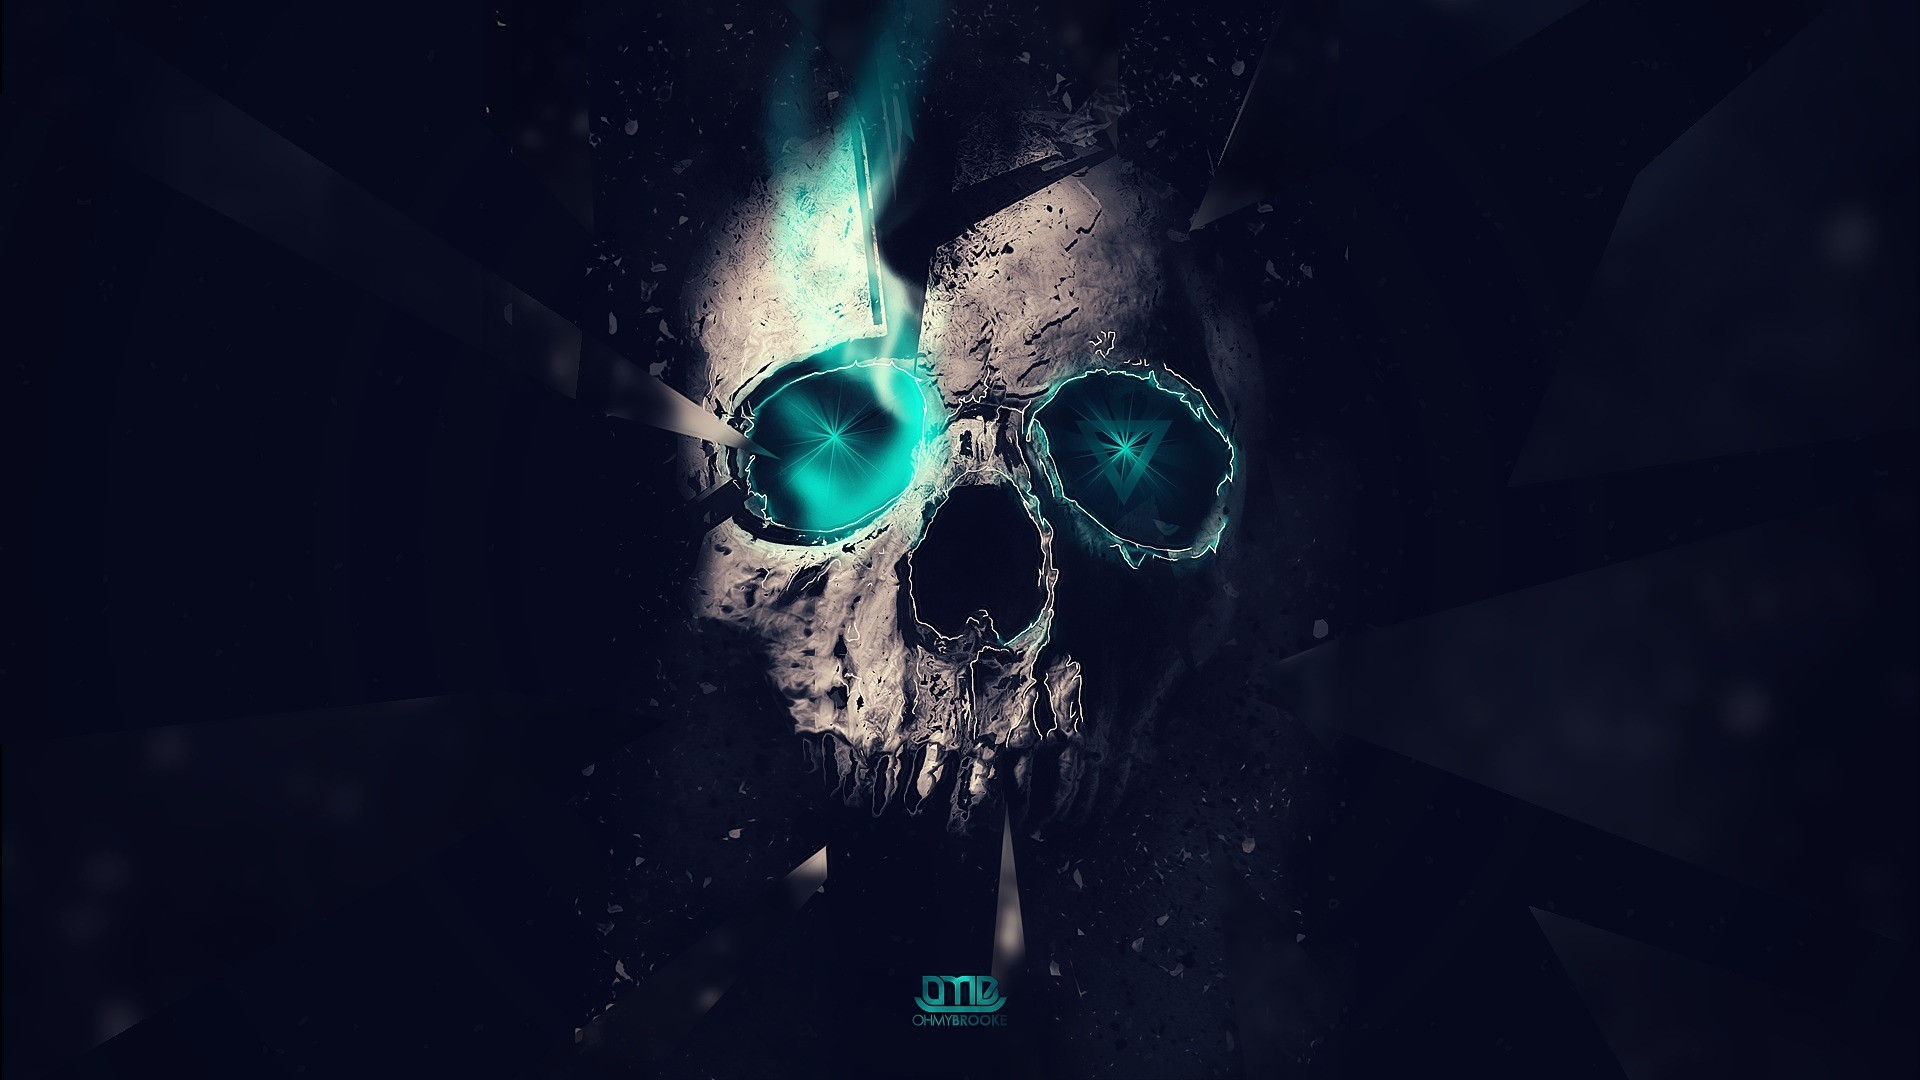 1920x1080 skull, abstract. blue lights, Triangles, lighting, space, hd wallpaper